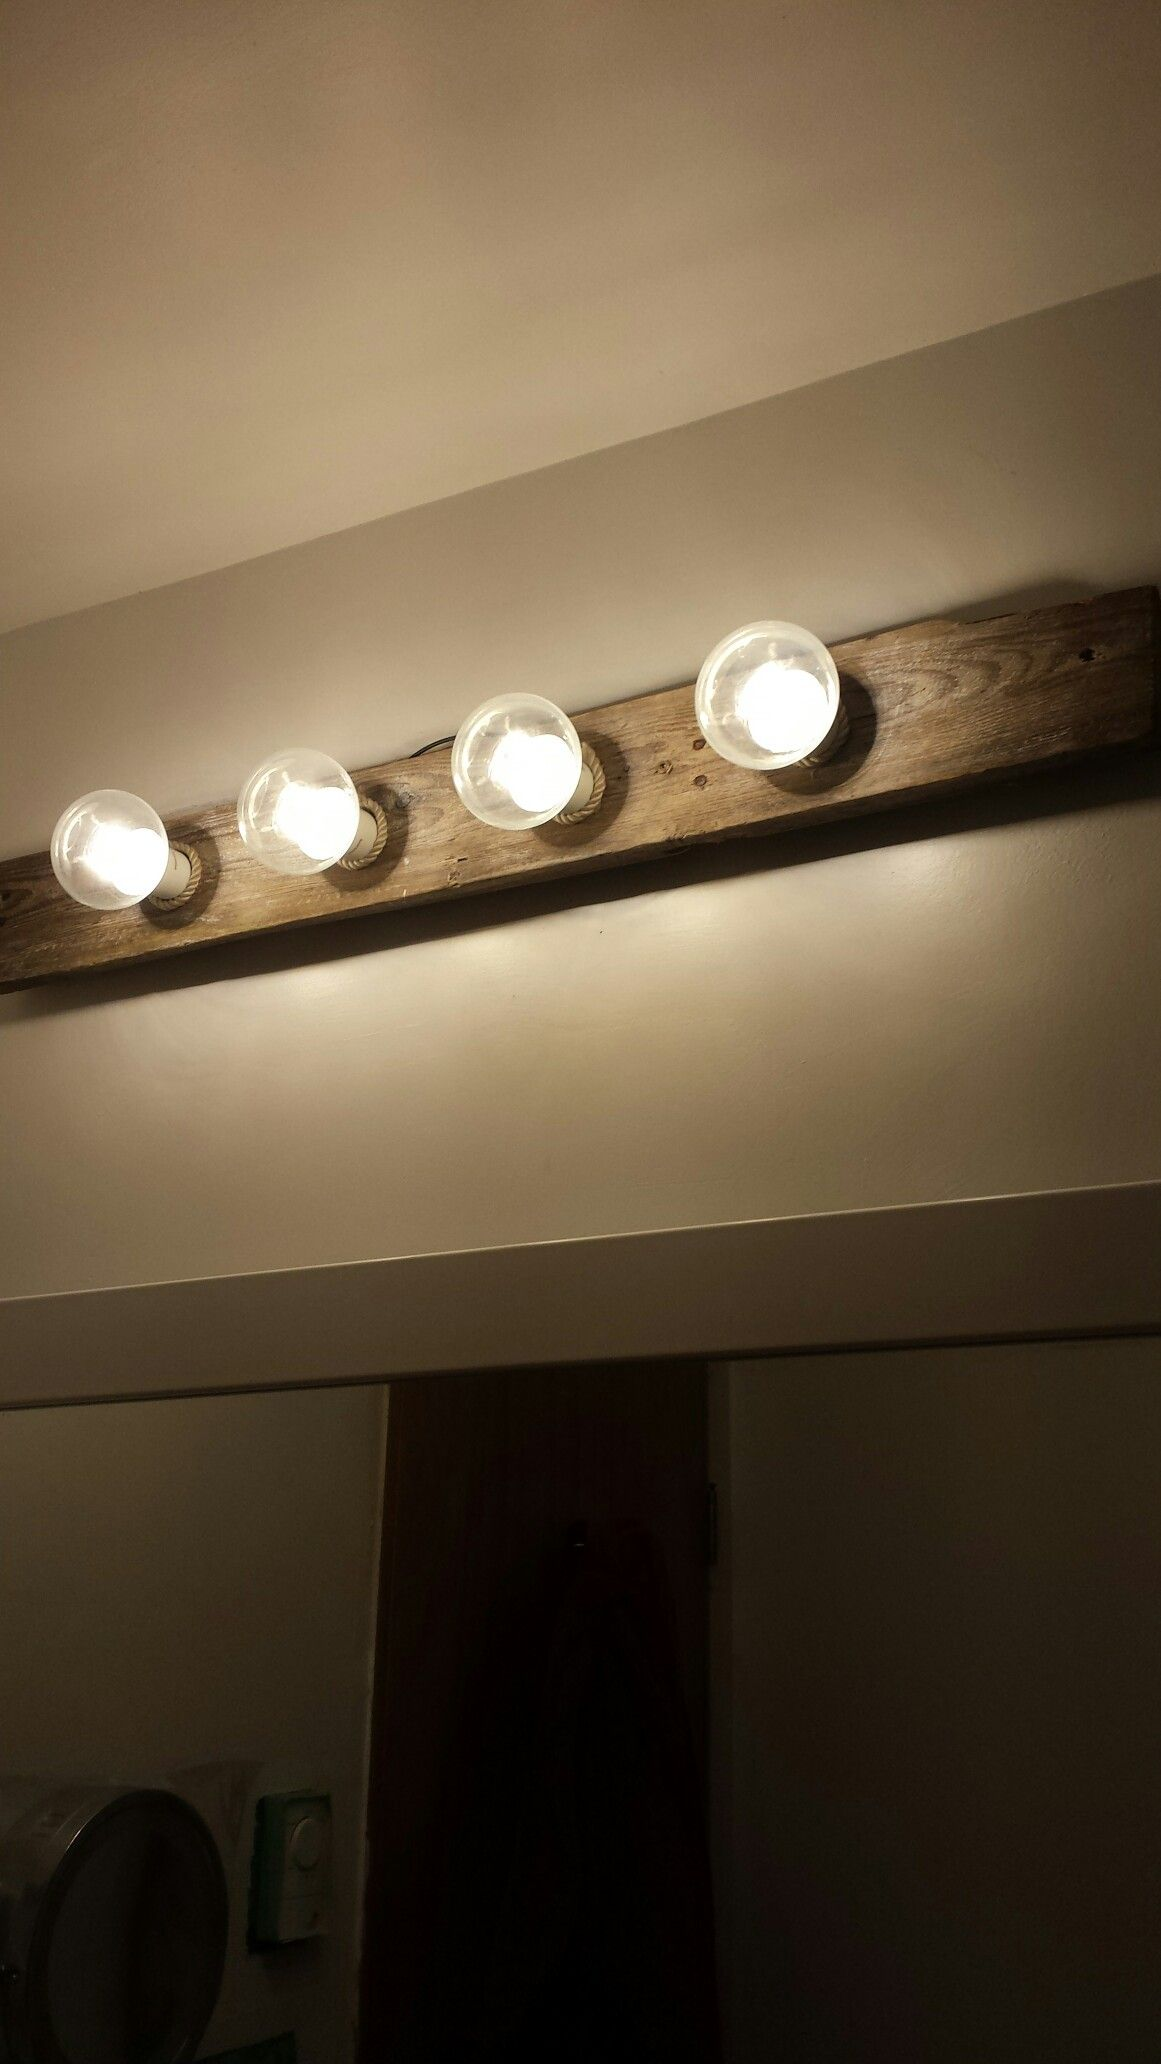 Driftwood Led Lights From Old Hollywood Bathroom Fixture